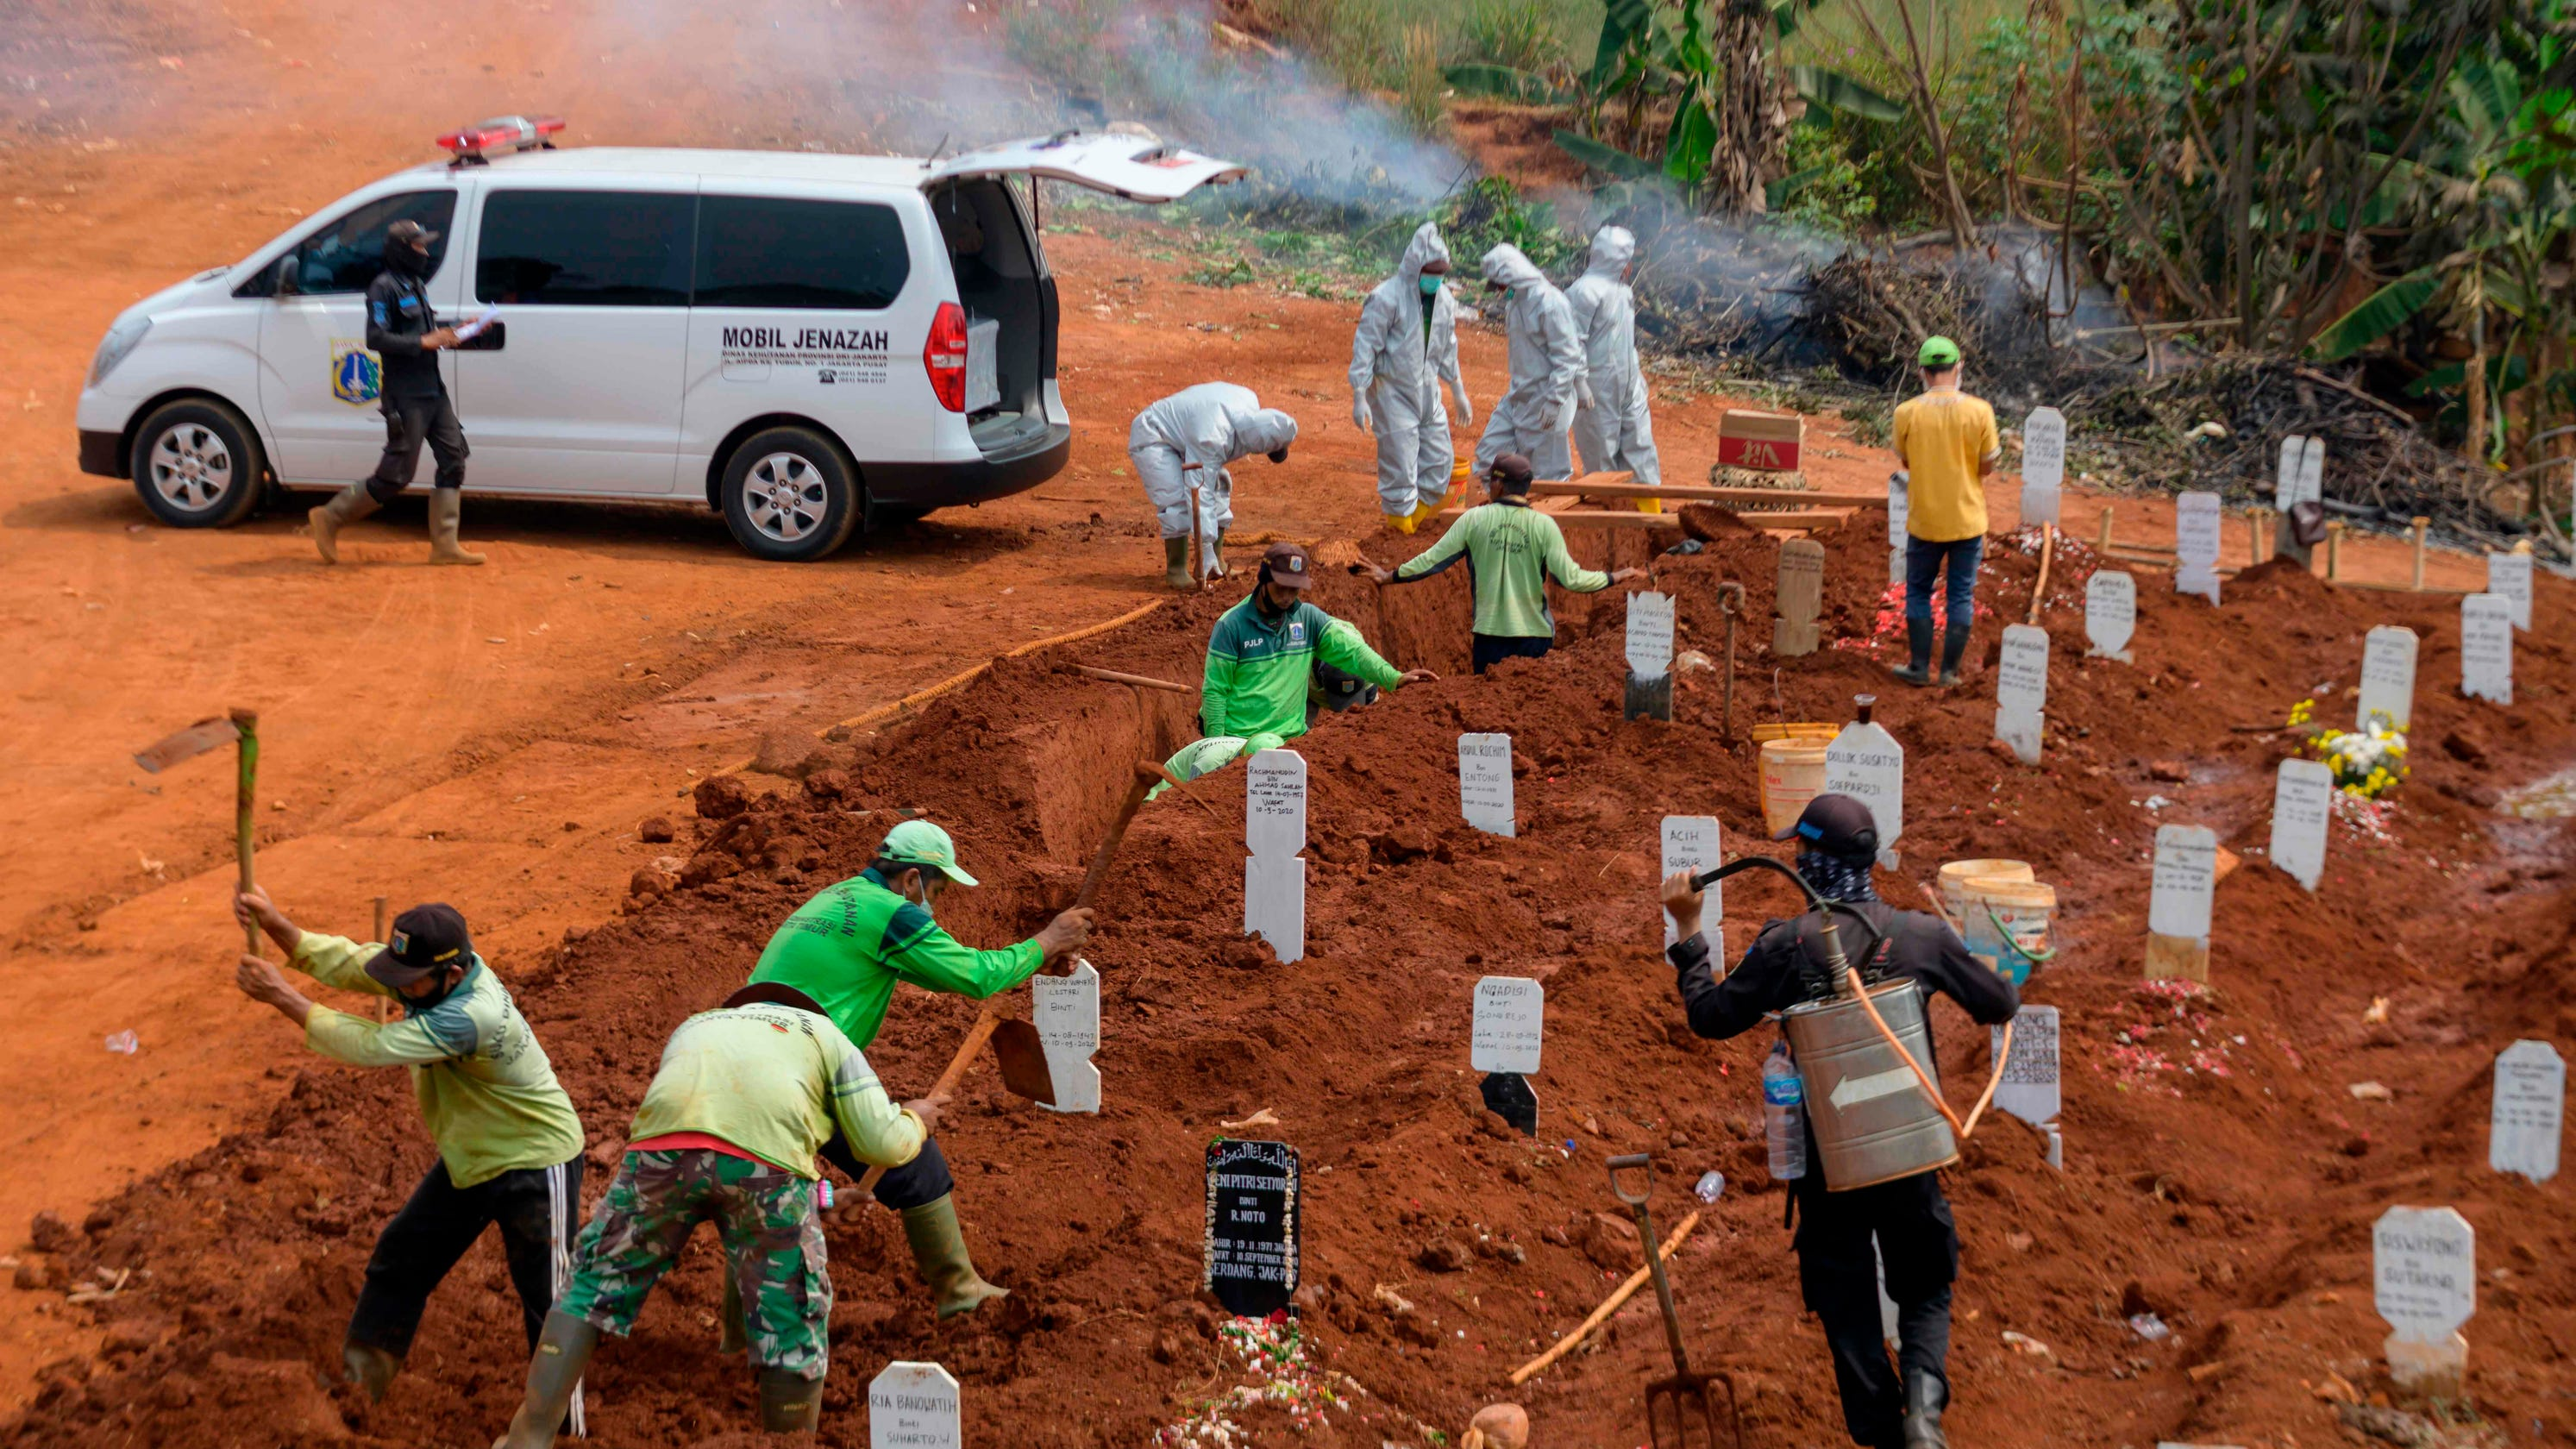 Eight people in Indonesia refused to wear face masks. They were ordered to dig graves for COVID-19 victims as punishment. – USA TODAY